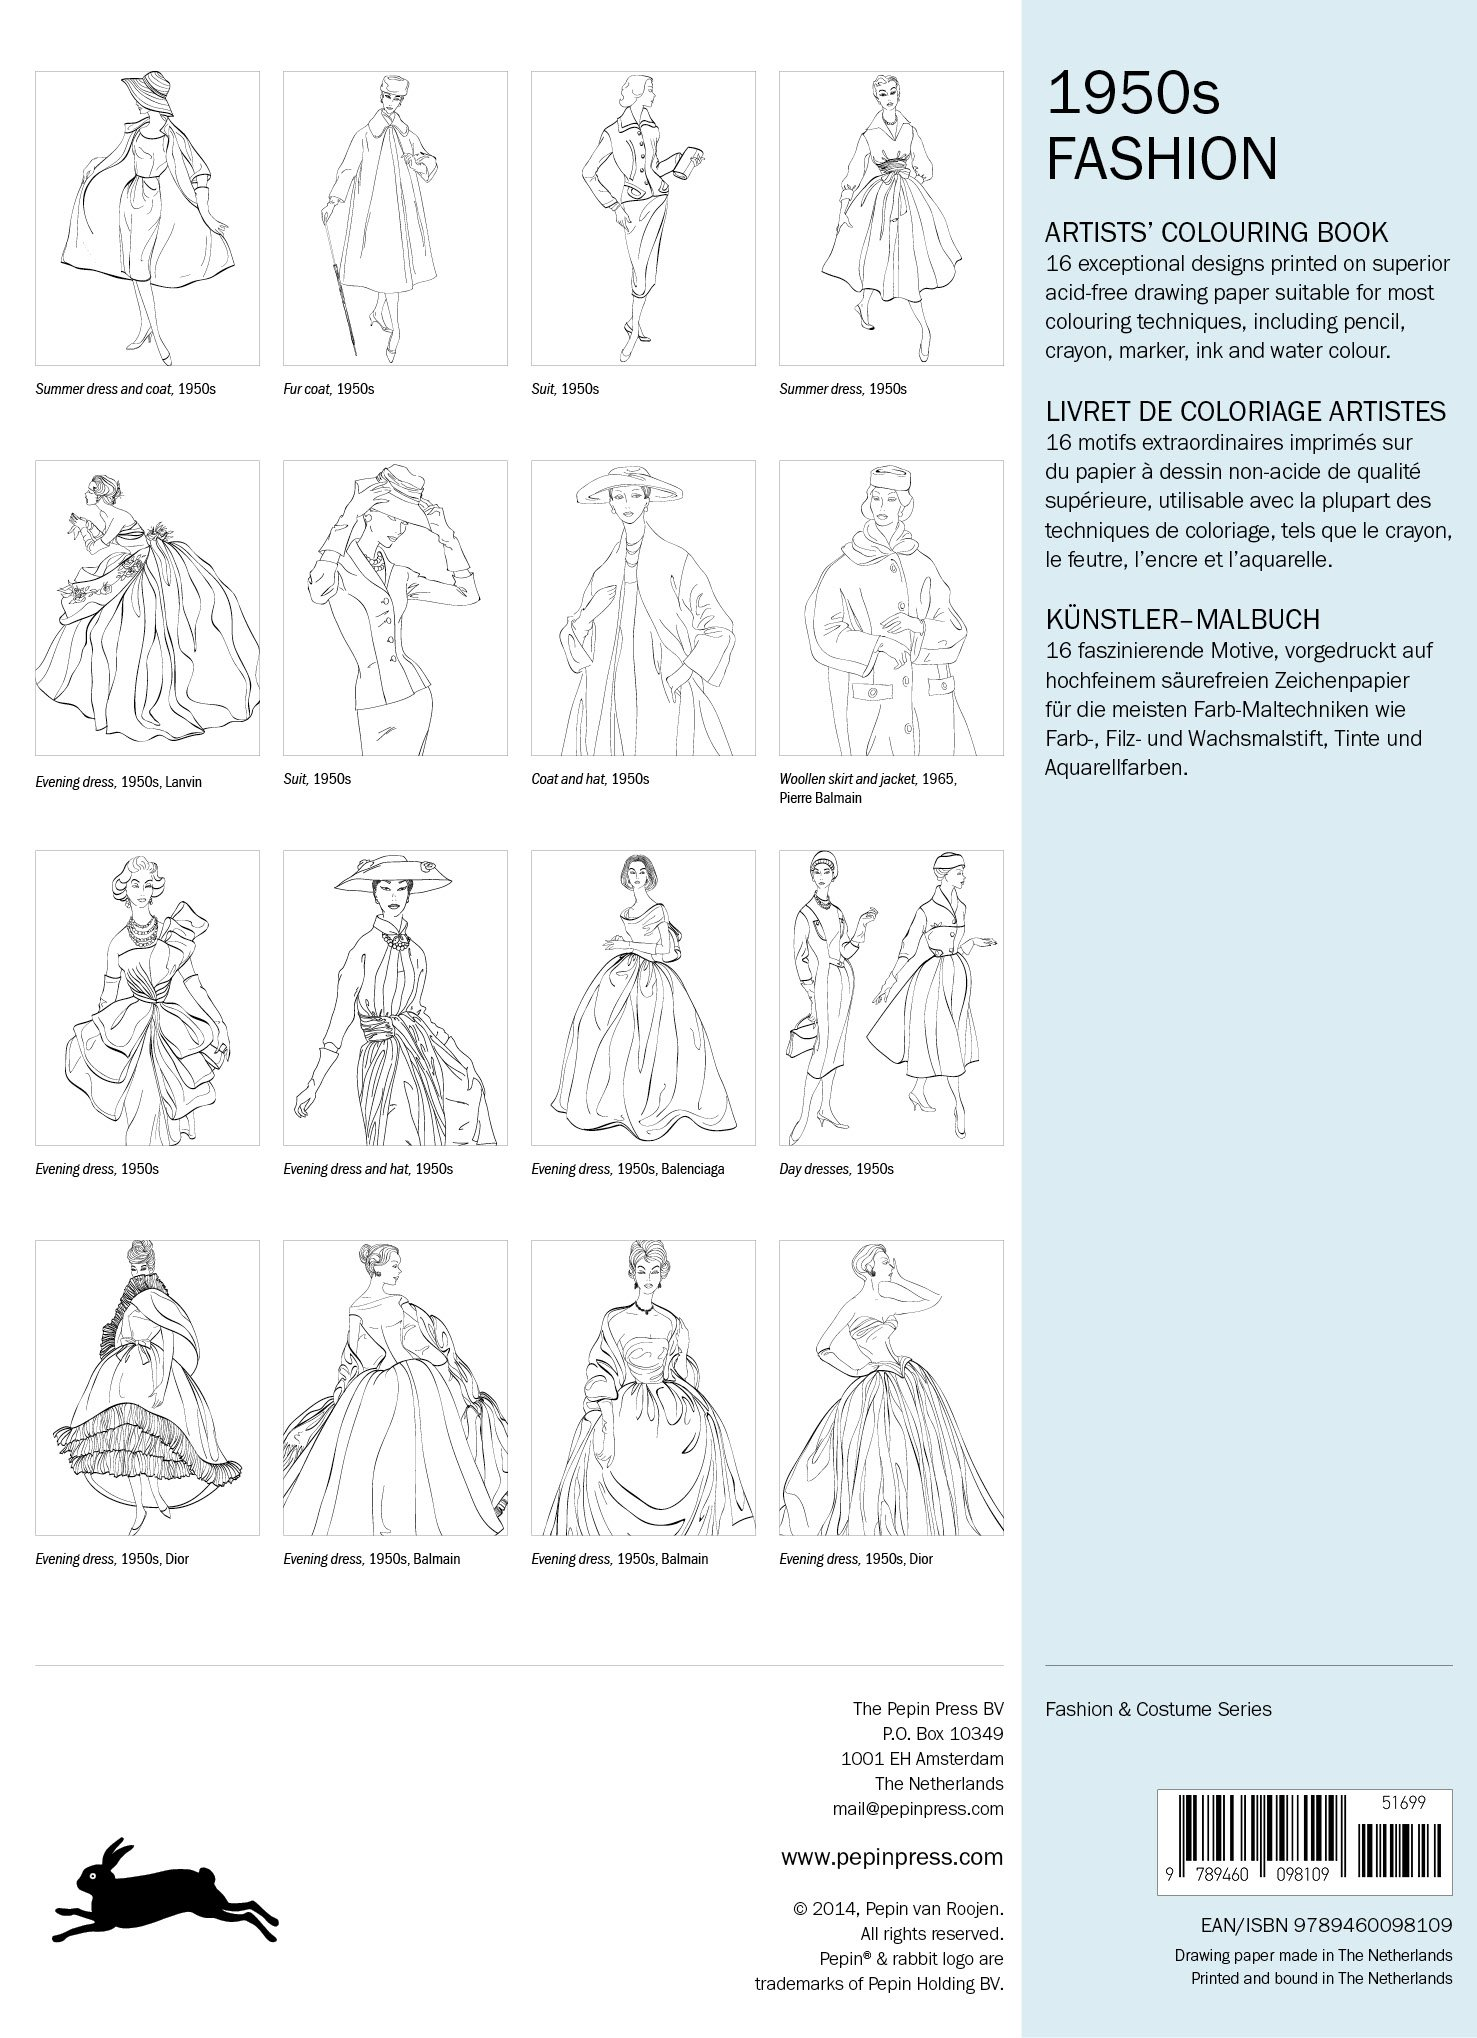 1950s Fashion (Artists Colouring Book)